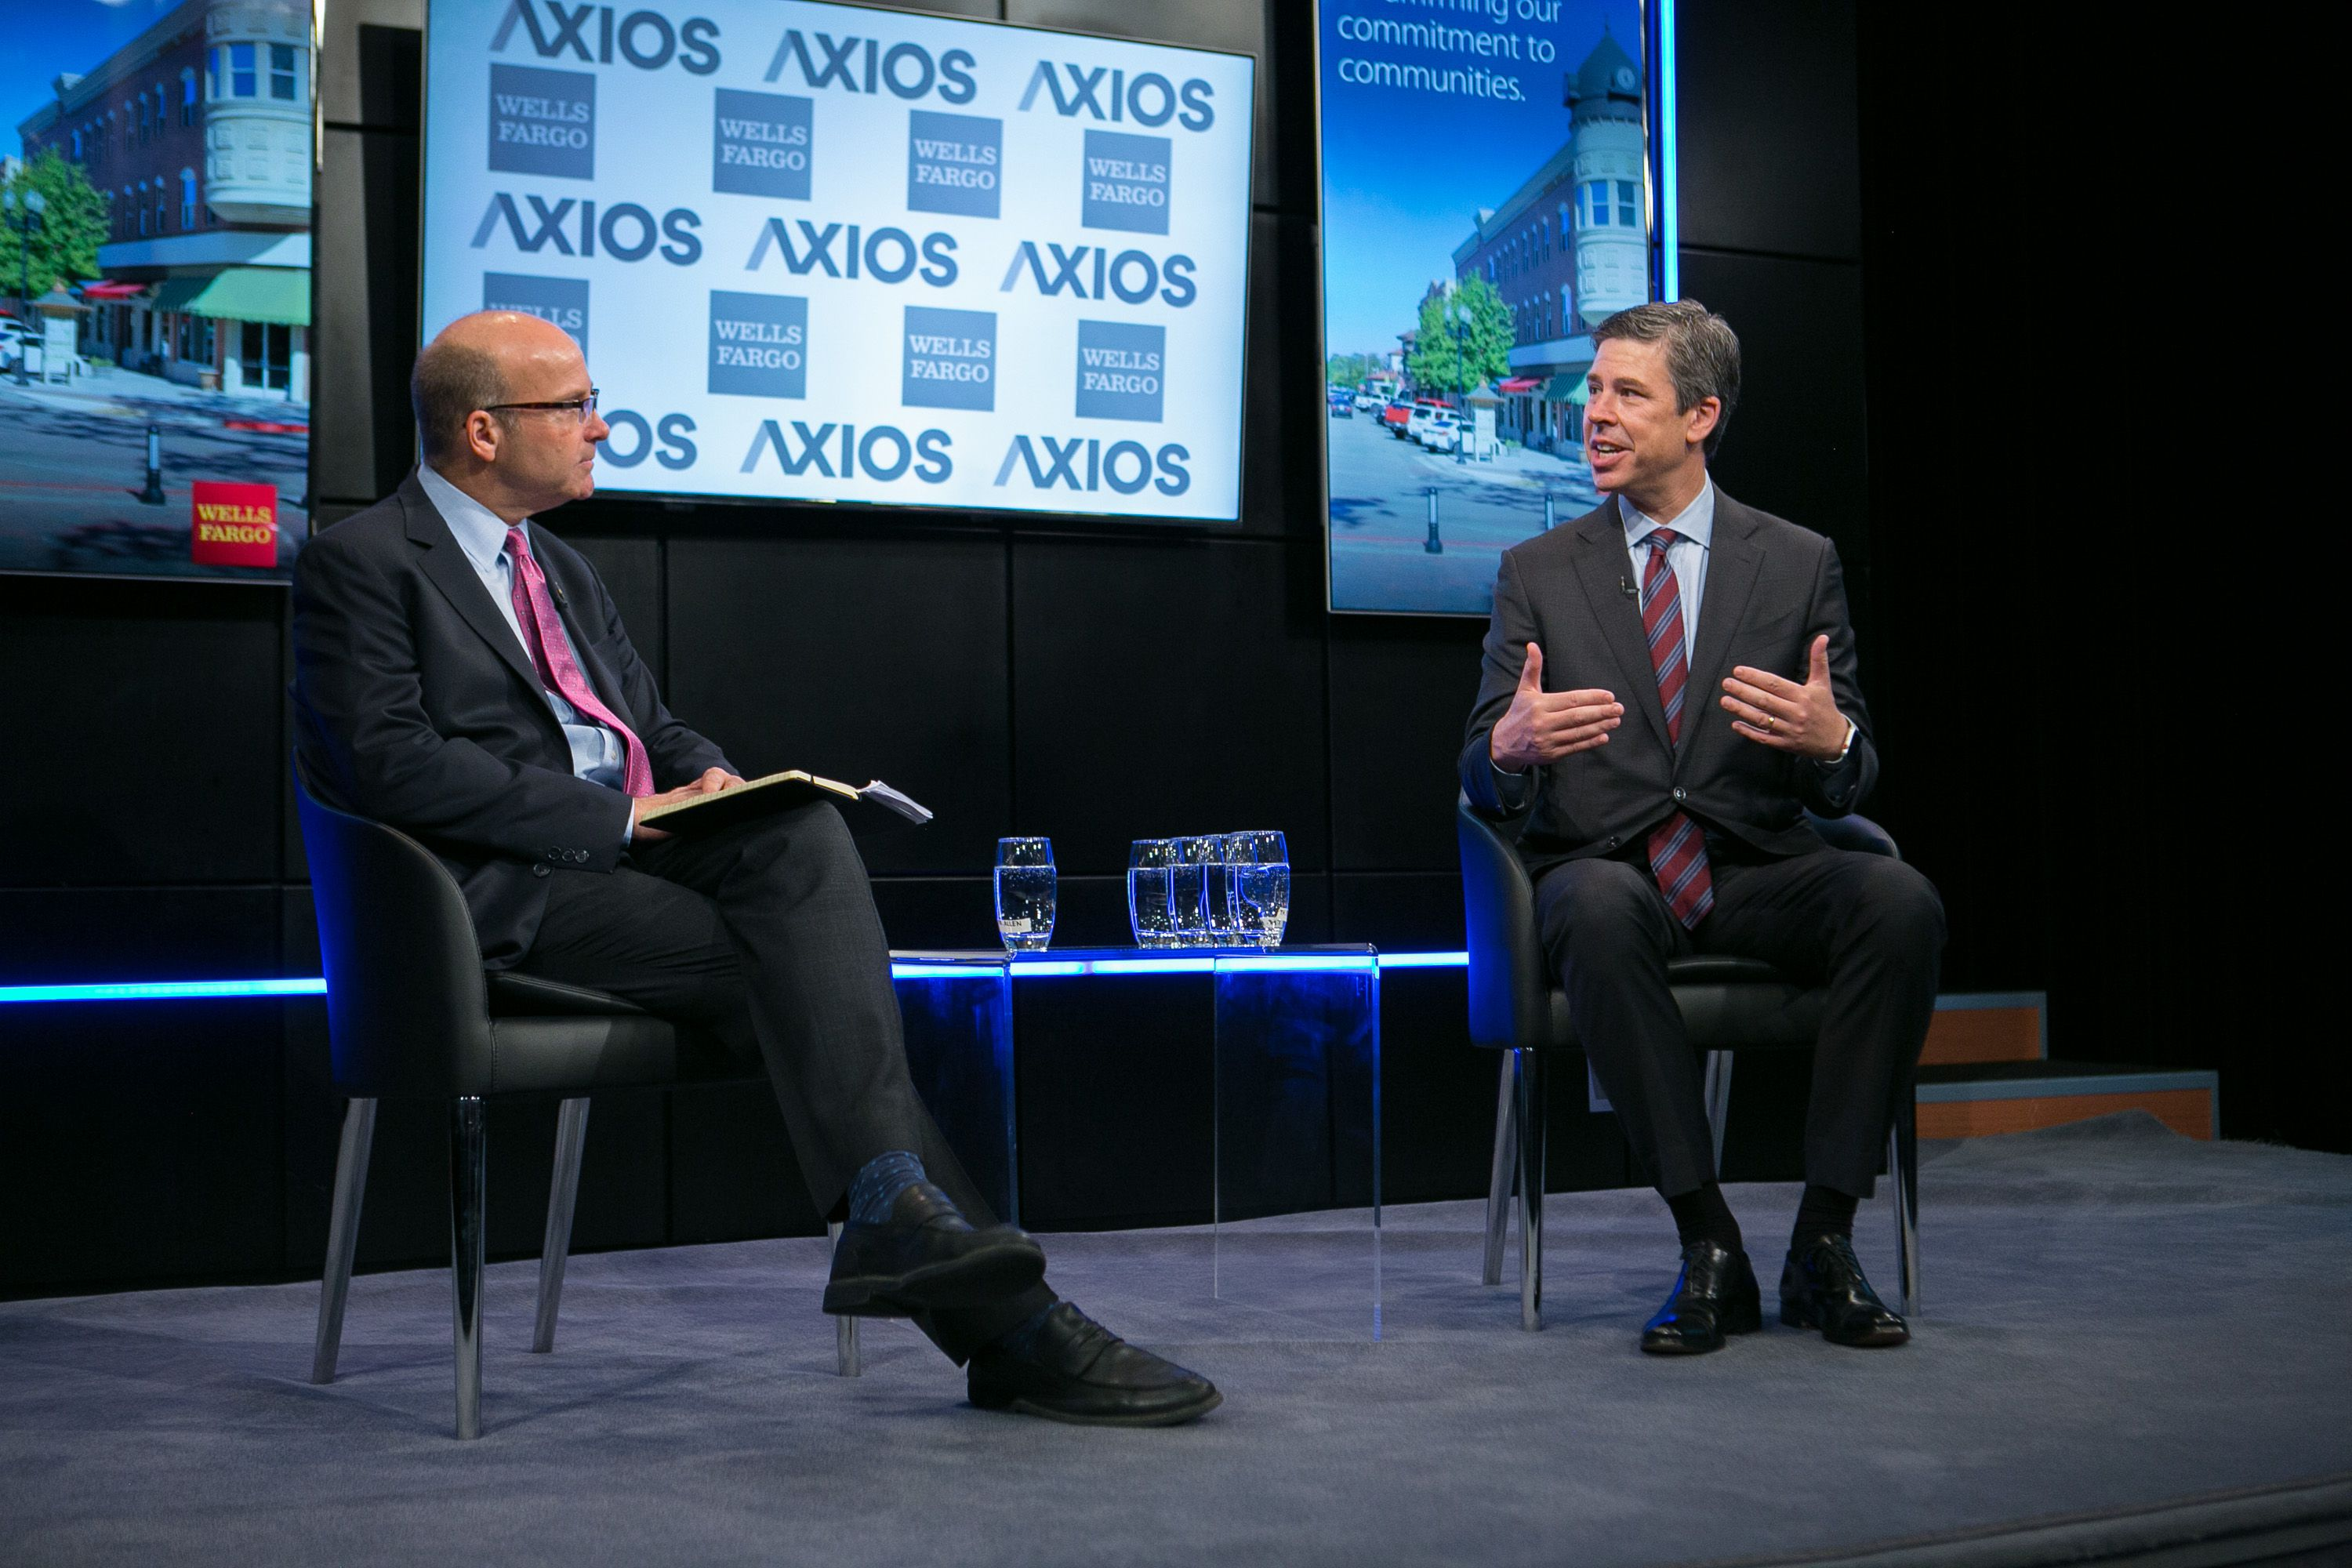 Mike Allen interviews Mayor Andy Burke on the Axios stage